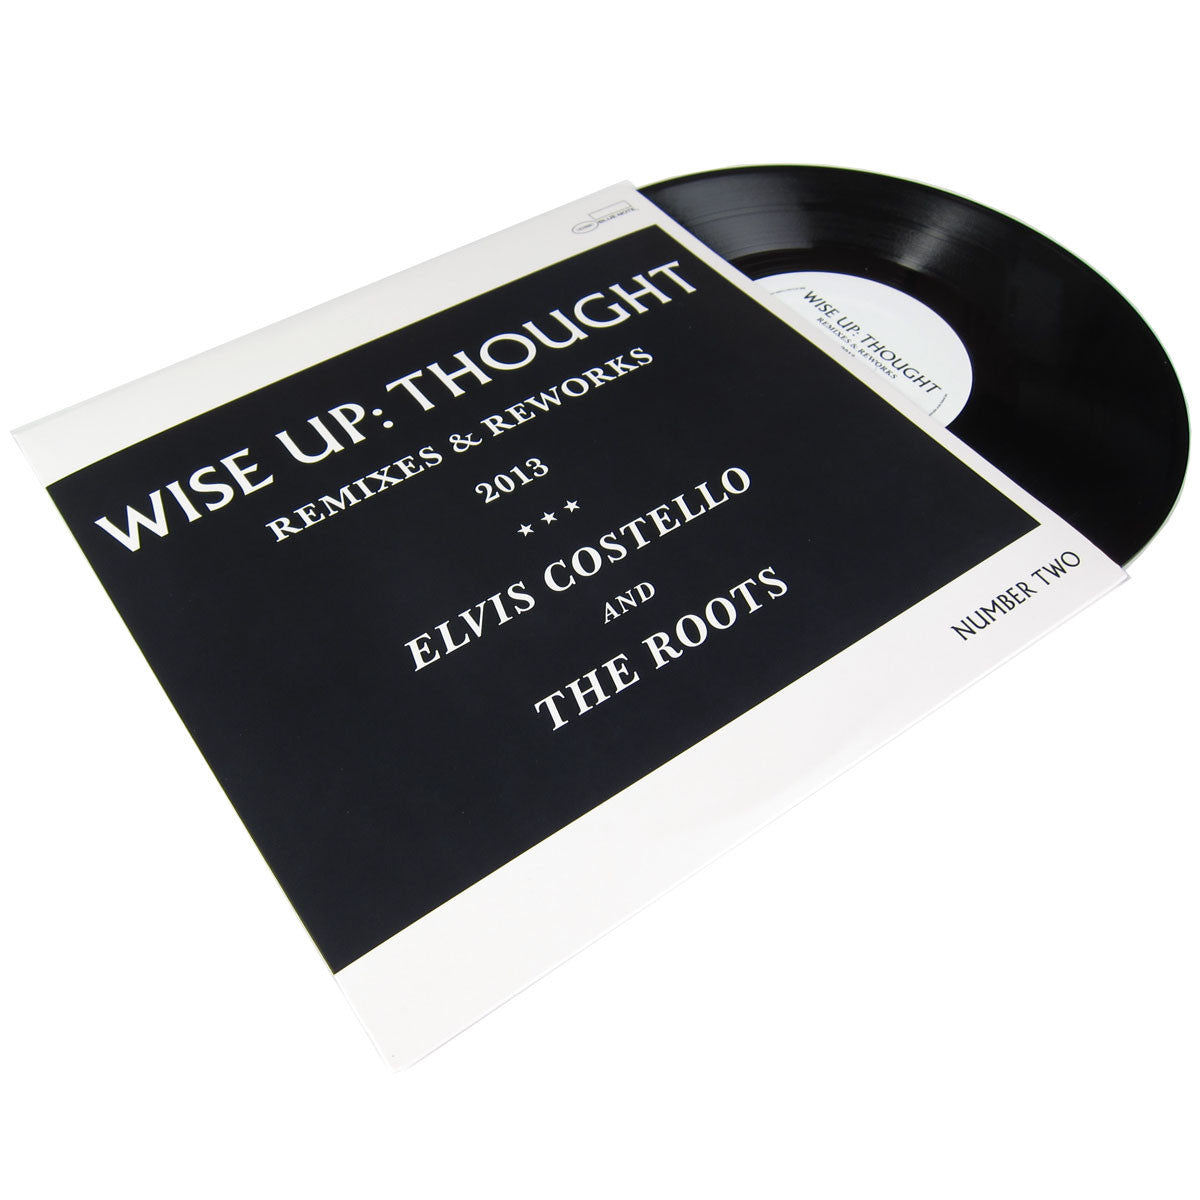 Elivis Costello and The Roots: Wise Up - Thought Remixes & Reworks (Karriem Riggins, Menahan Street Band) Vinyl 10""